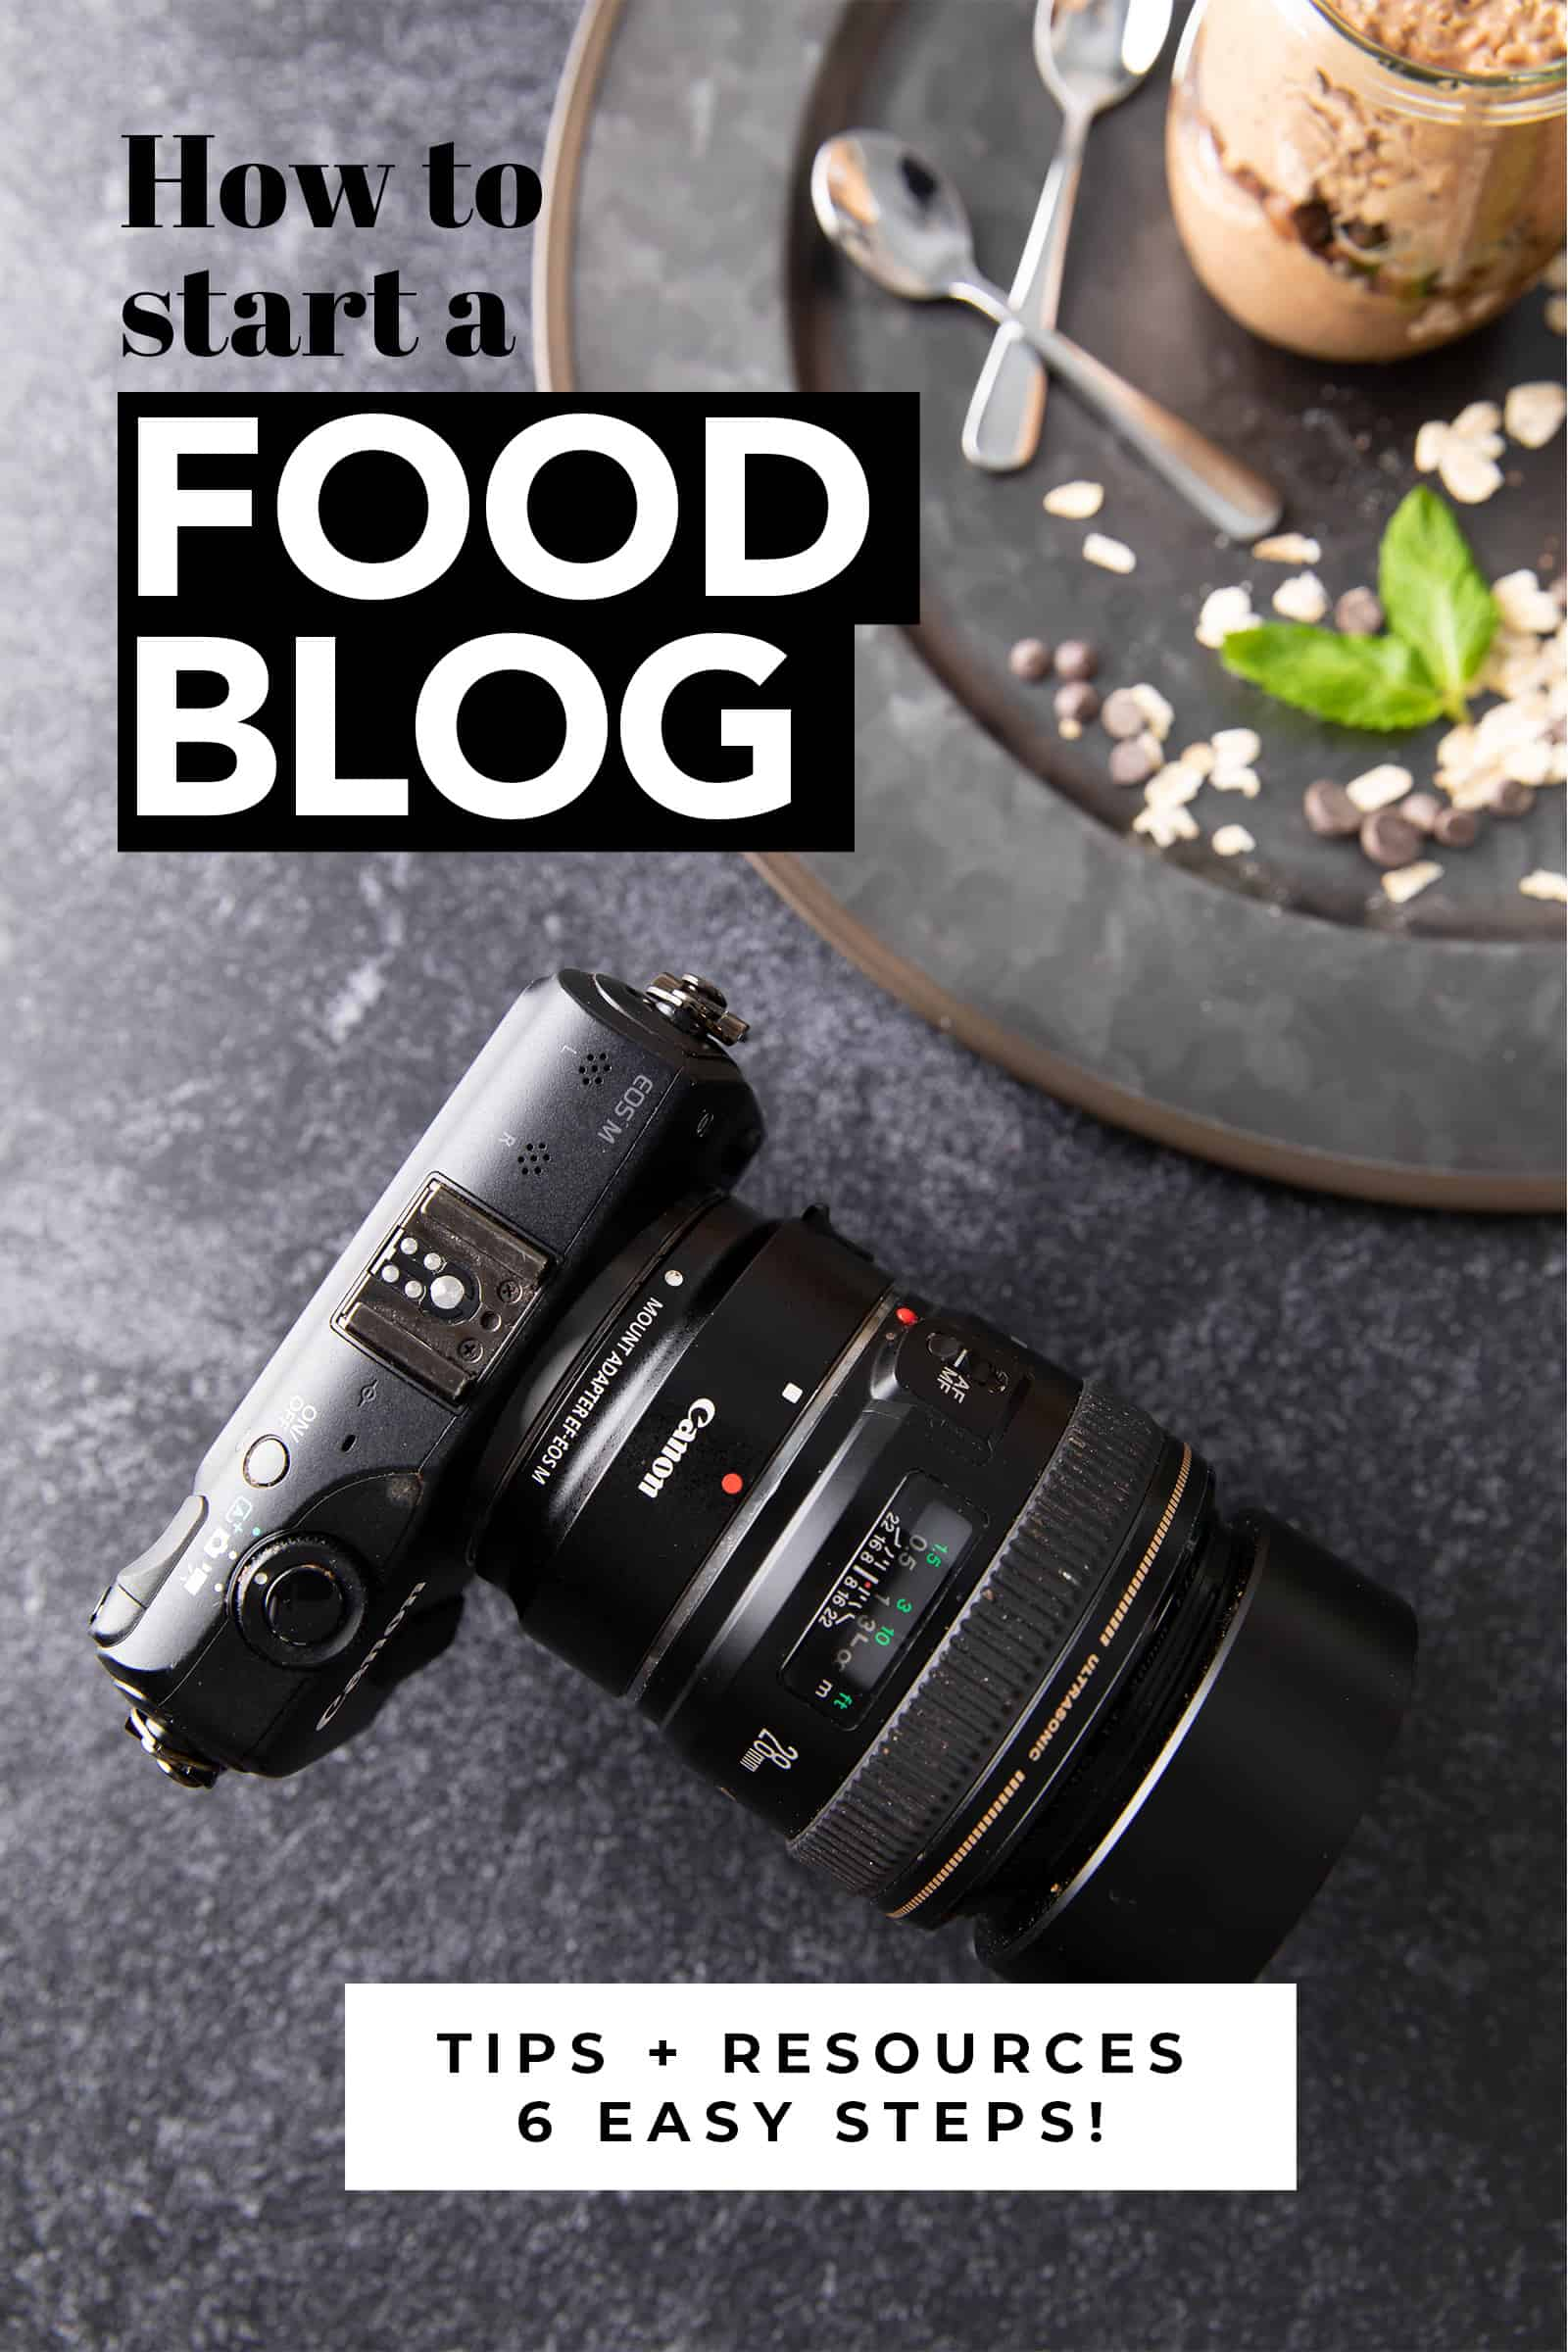 How to Start a Food Blog: learn how to start a food blog in just 6 easy steps. Get food blogging tips, advice and resources to start a successful food blog! #Blogging #FoodBlogging #FoodBlog #BloggingTips | Post at BeamingBaker.com